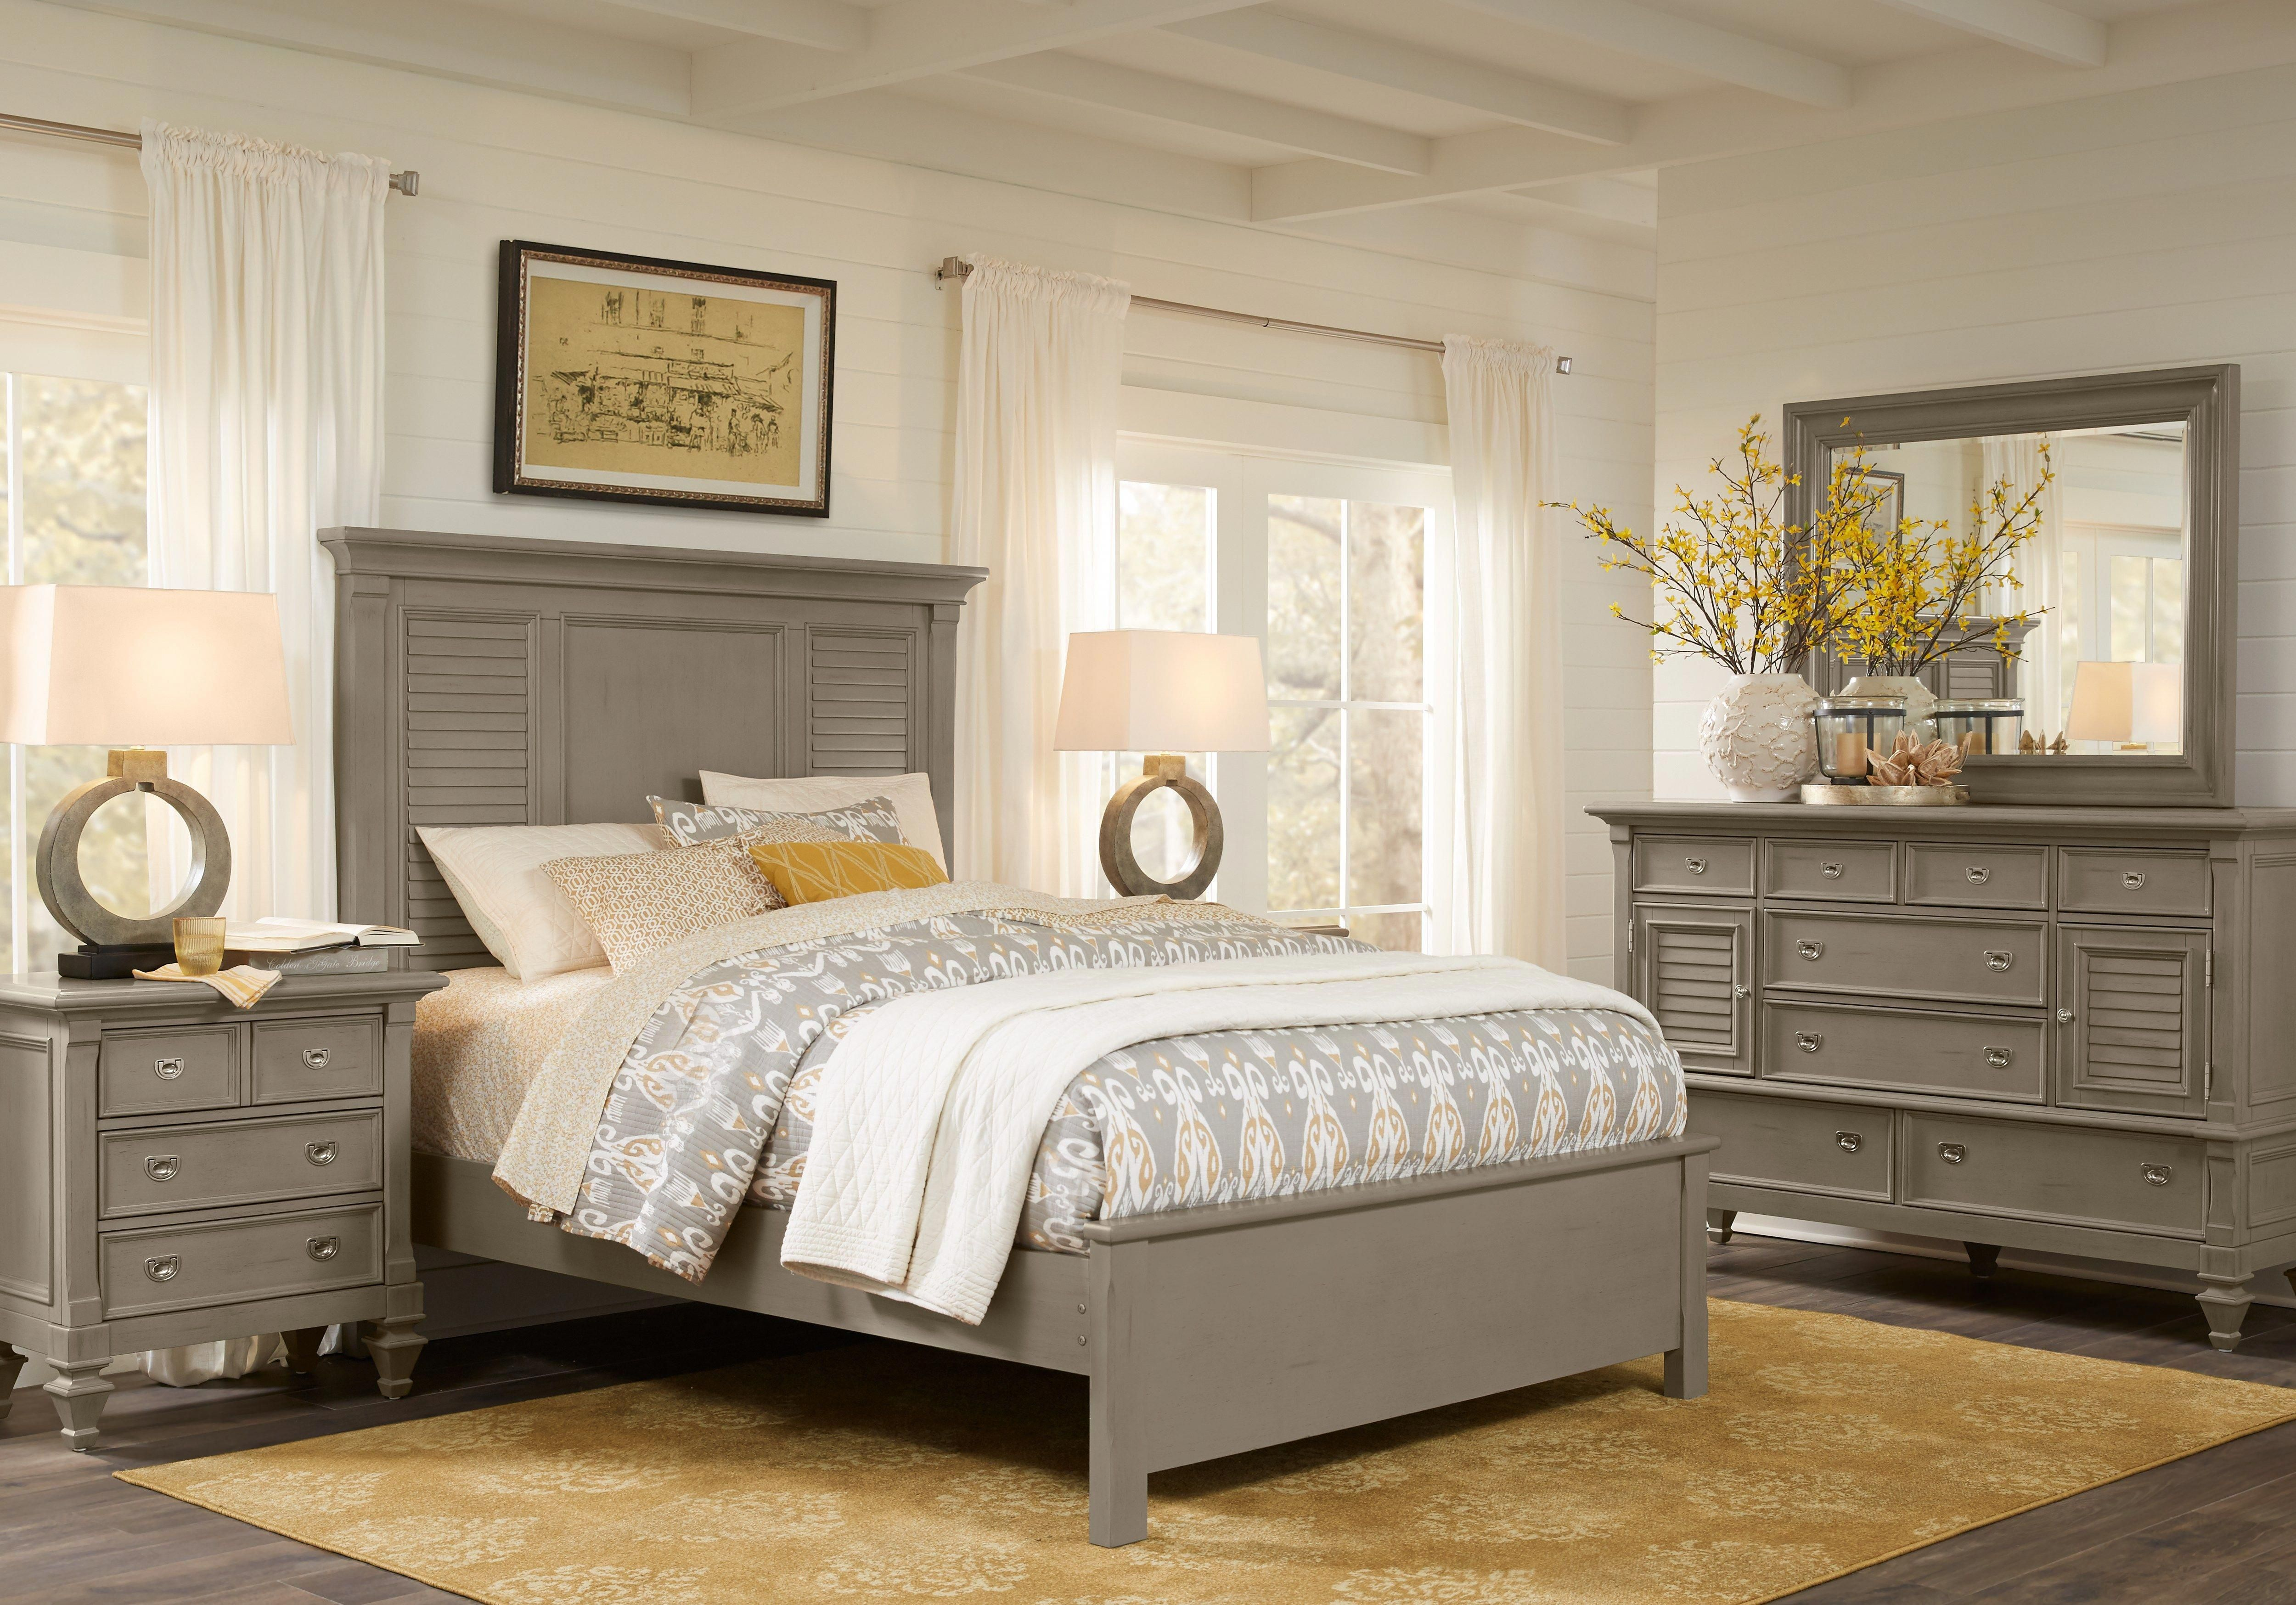 furniturebedroom king bedroom sets bedroom sets furniture queen bedroom sets queen